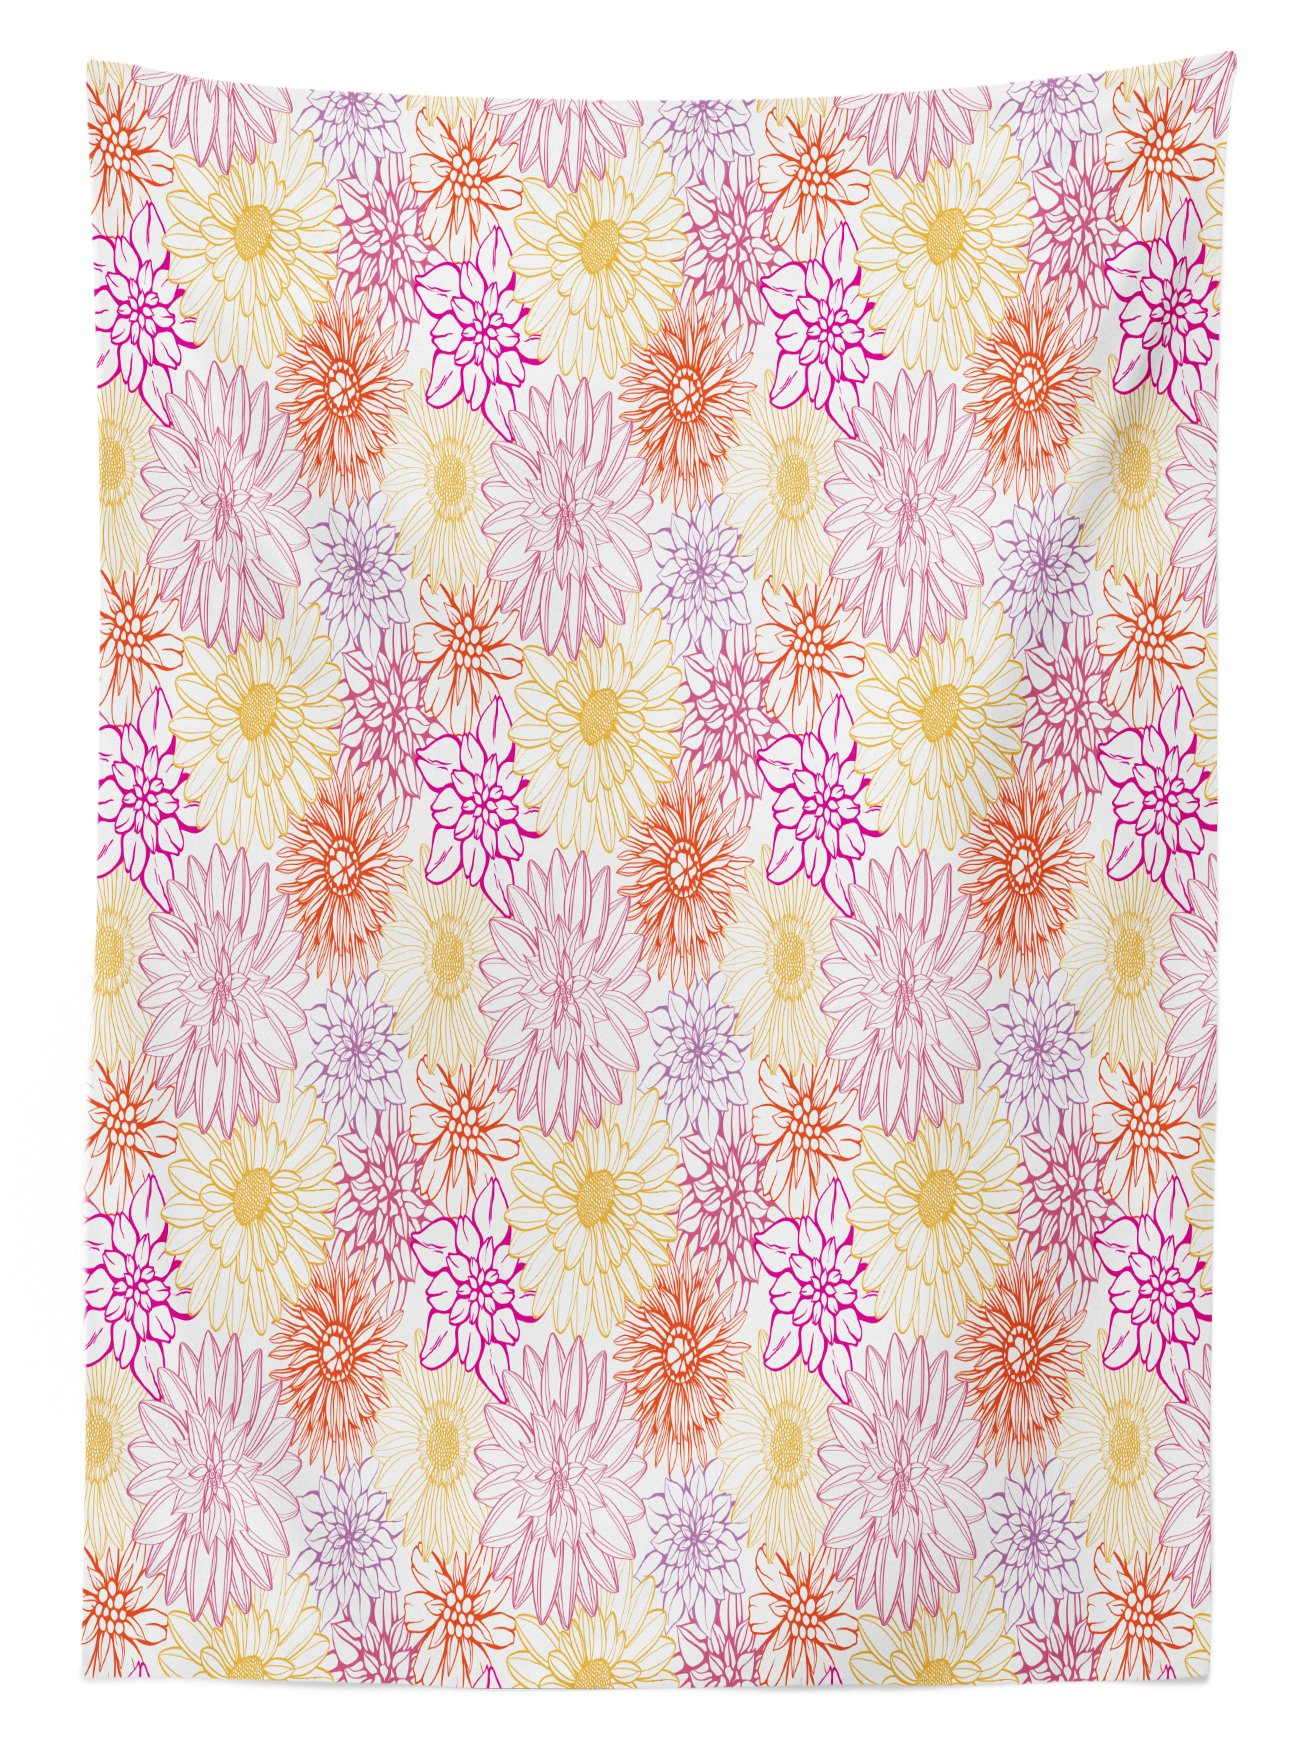 Ambesonne Floral Outdoor Tablecloth, Blossom Spa Gardening Theme Flower Petals Essence Bouquet Art, Decorative Washable Picnic Table Cloth, 58 X 120 inches, Pale Yellow Dark Coral Fuchsia by Ambesonne (Image #1)